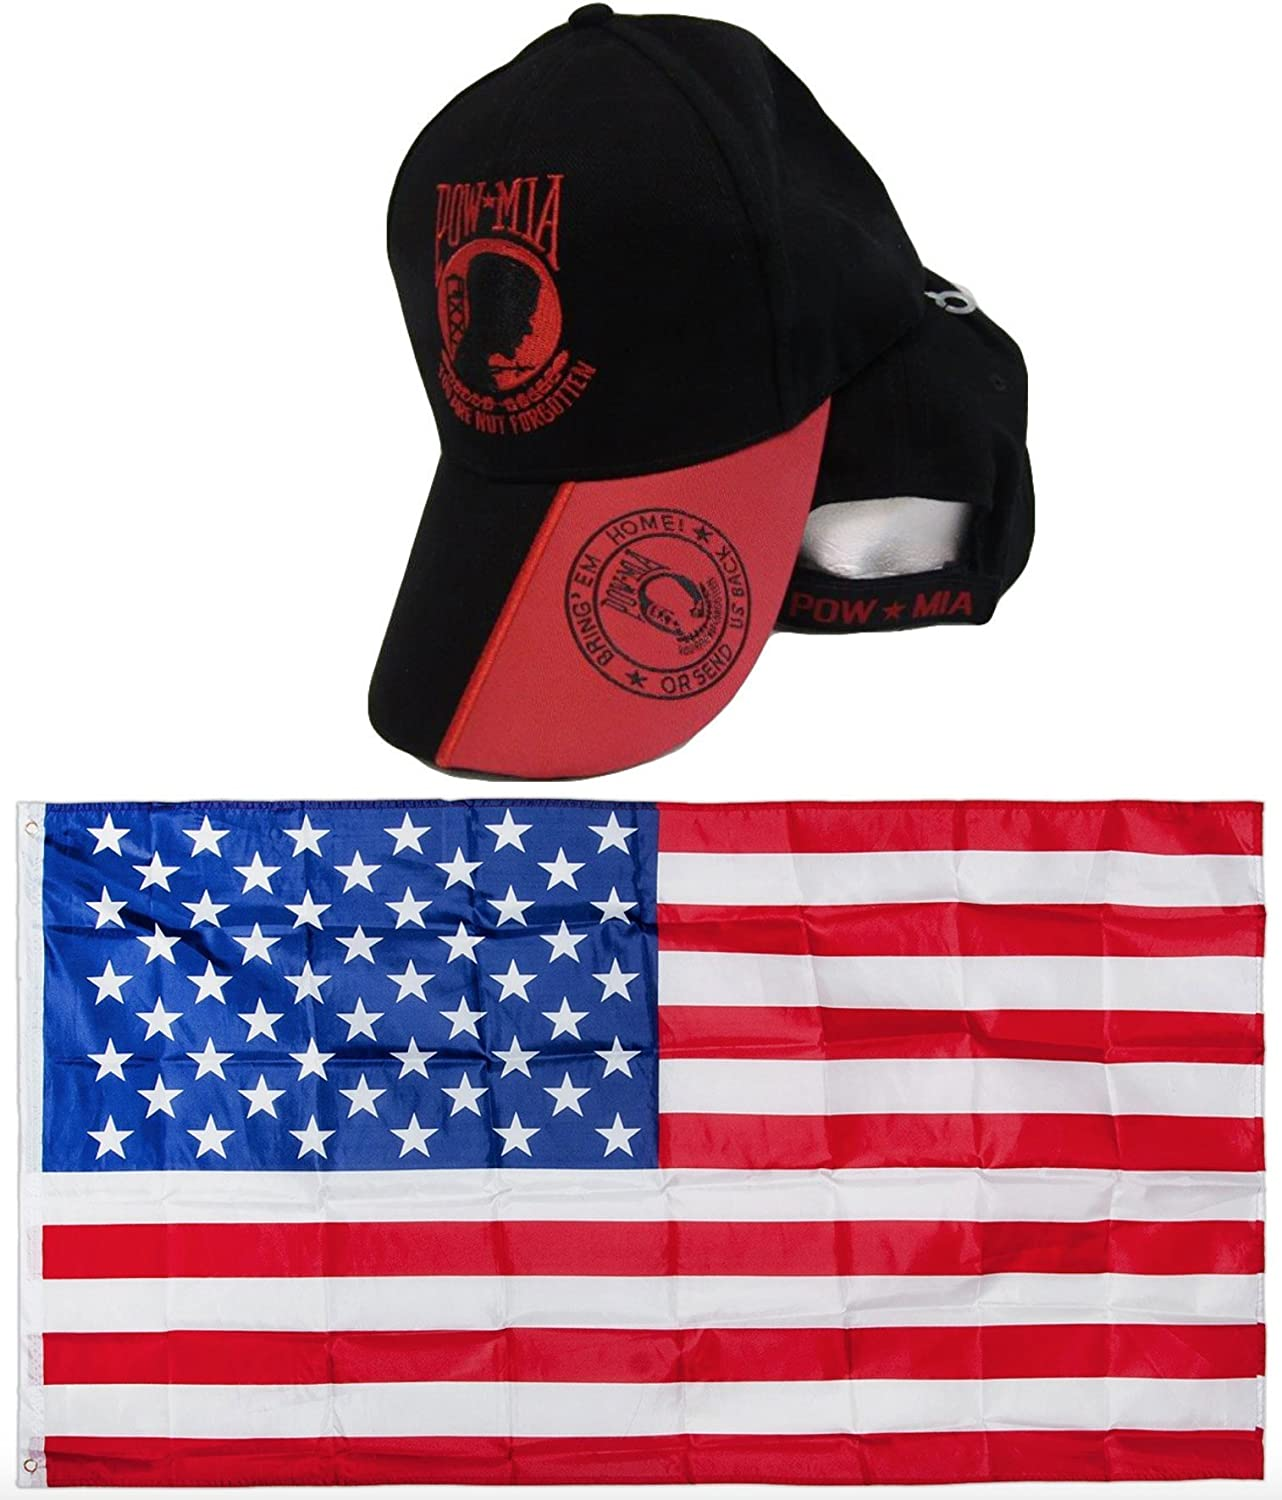 POWMIA POW MIA Red Black Bring Them Home or Send Us Back Embroidred Hat Cap & USA Flag 3x5 Super Polyester Nylon Flag 3'x5' House Banner Grommets Double Stitched Premium Quality